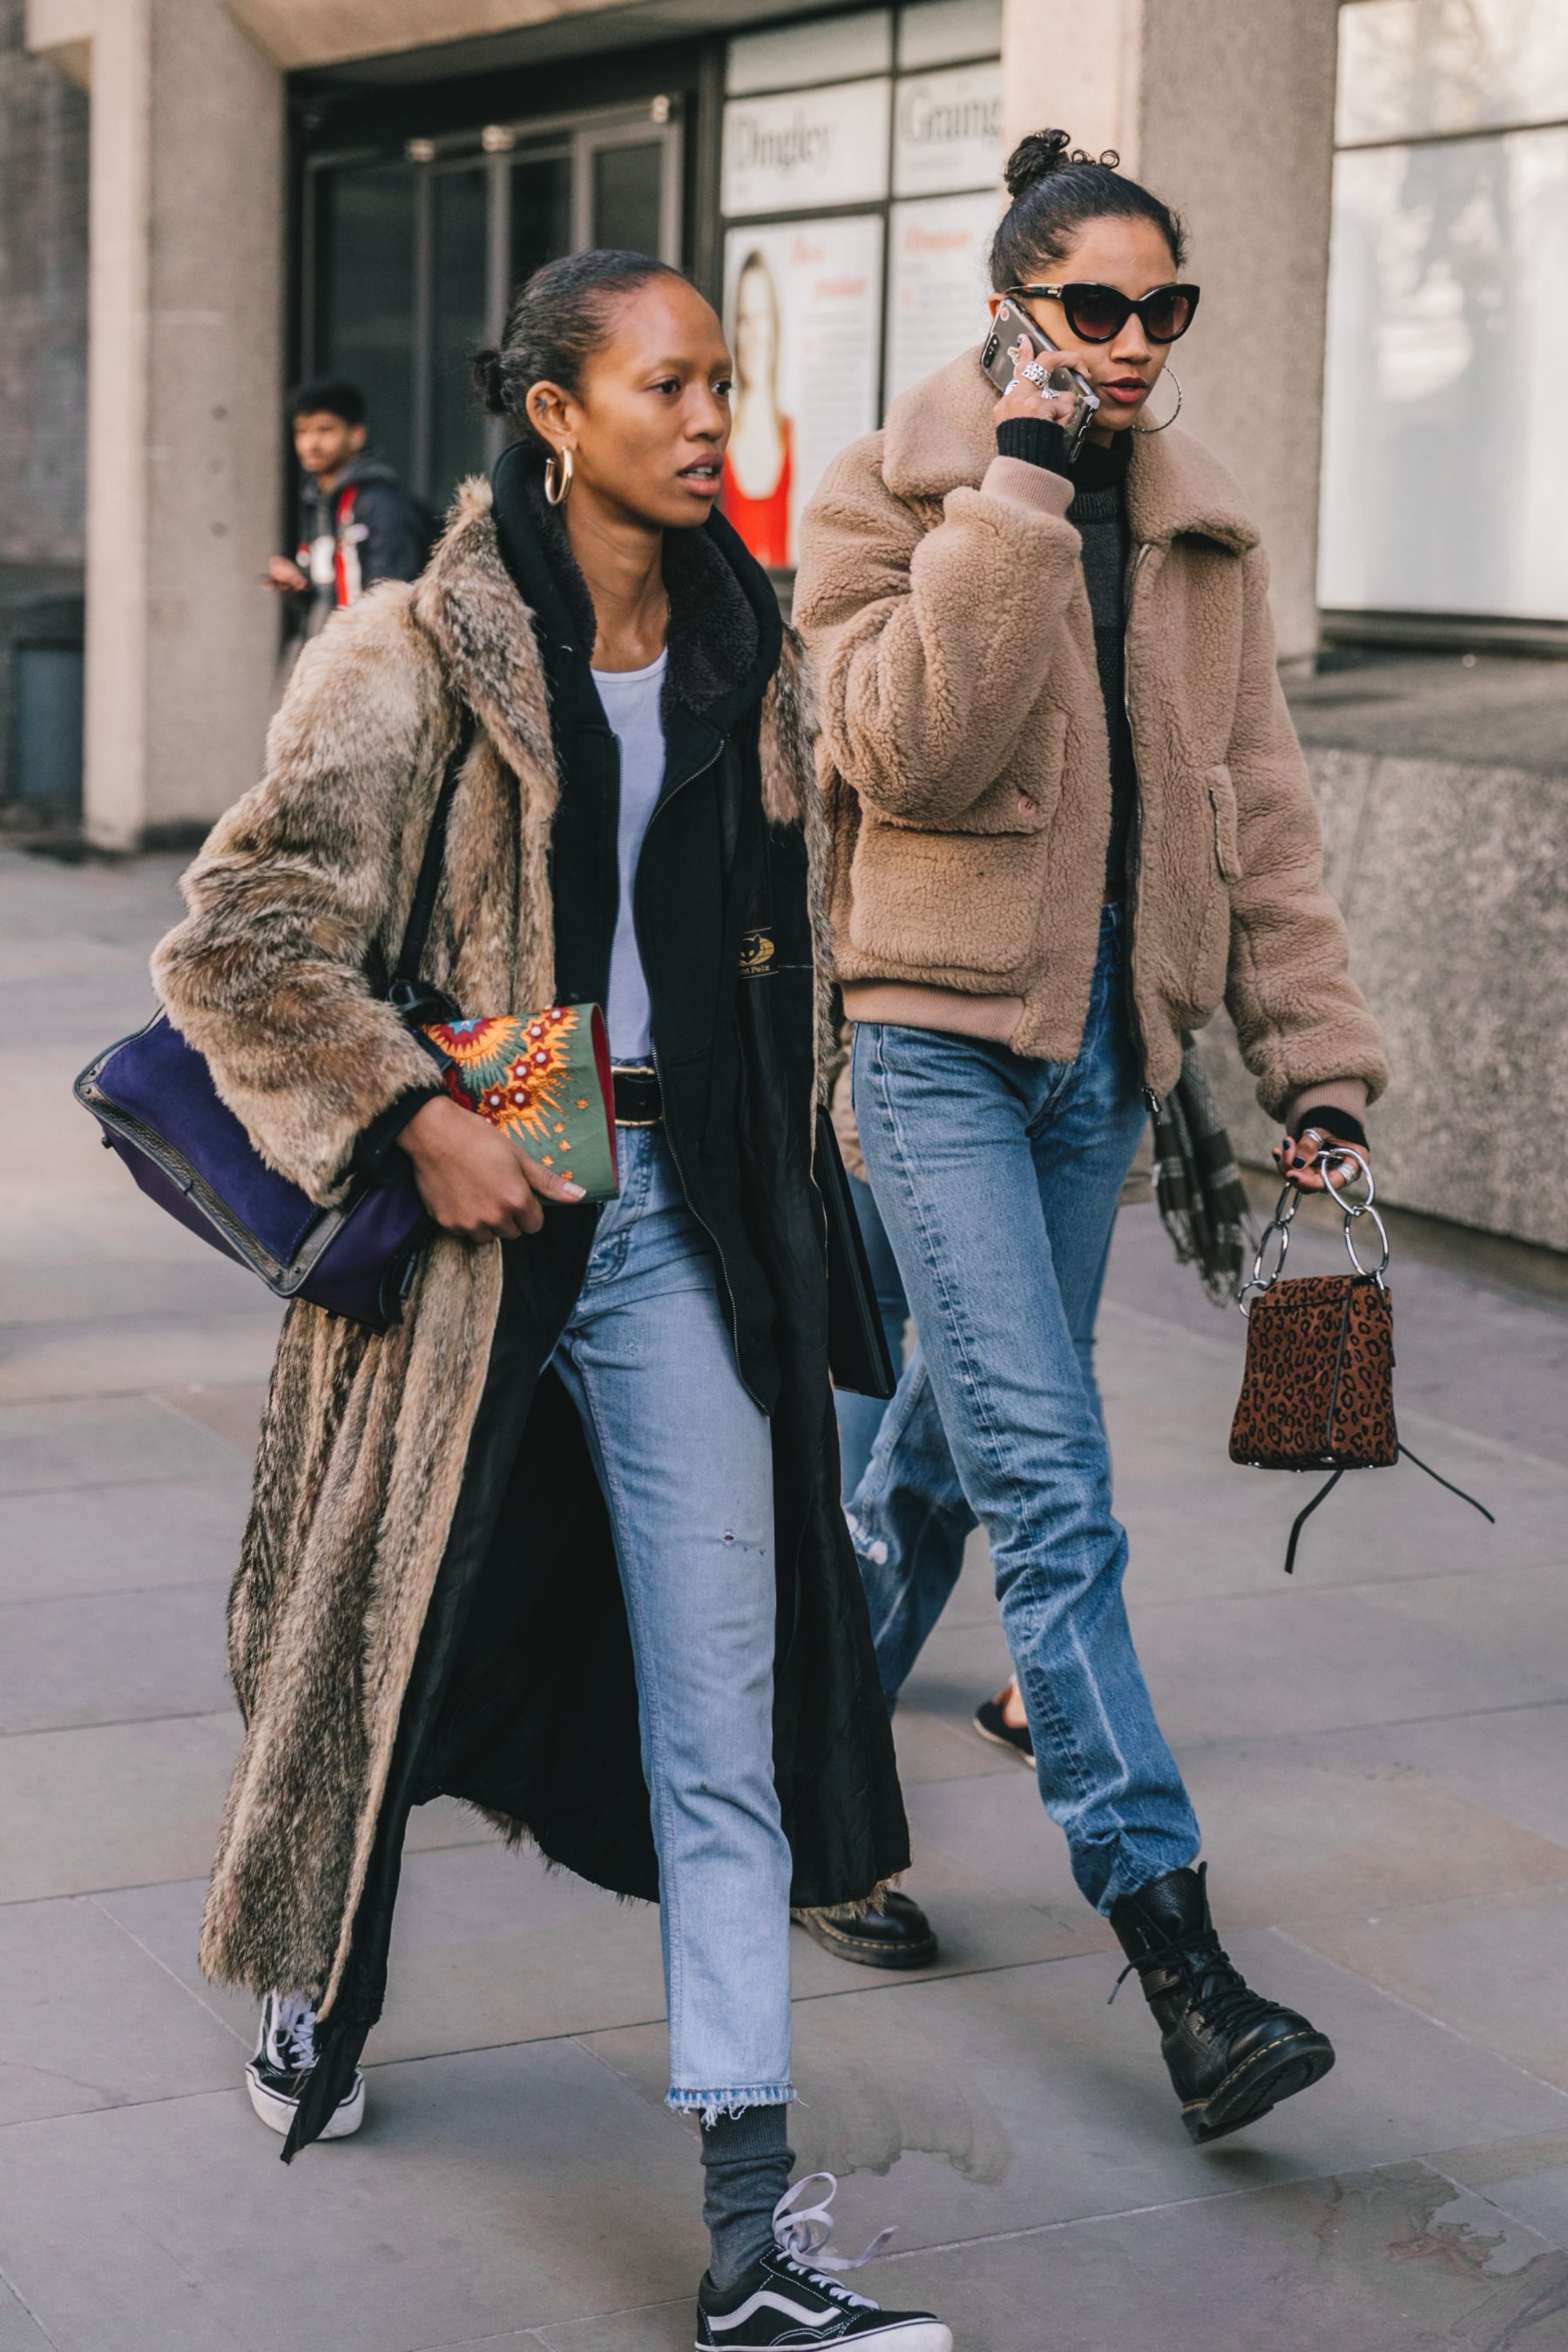 19 Stylish Fall Outfits Worth Copying: LFW FALL 18/19 STREET STYLE I